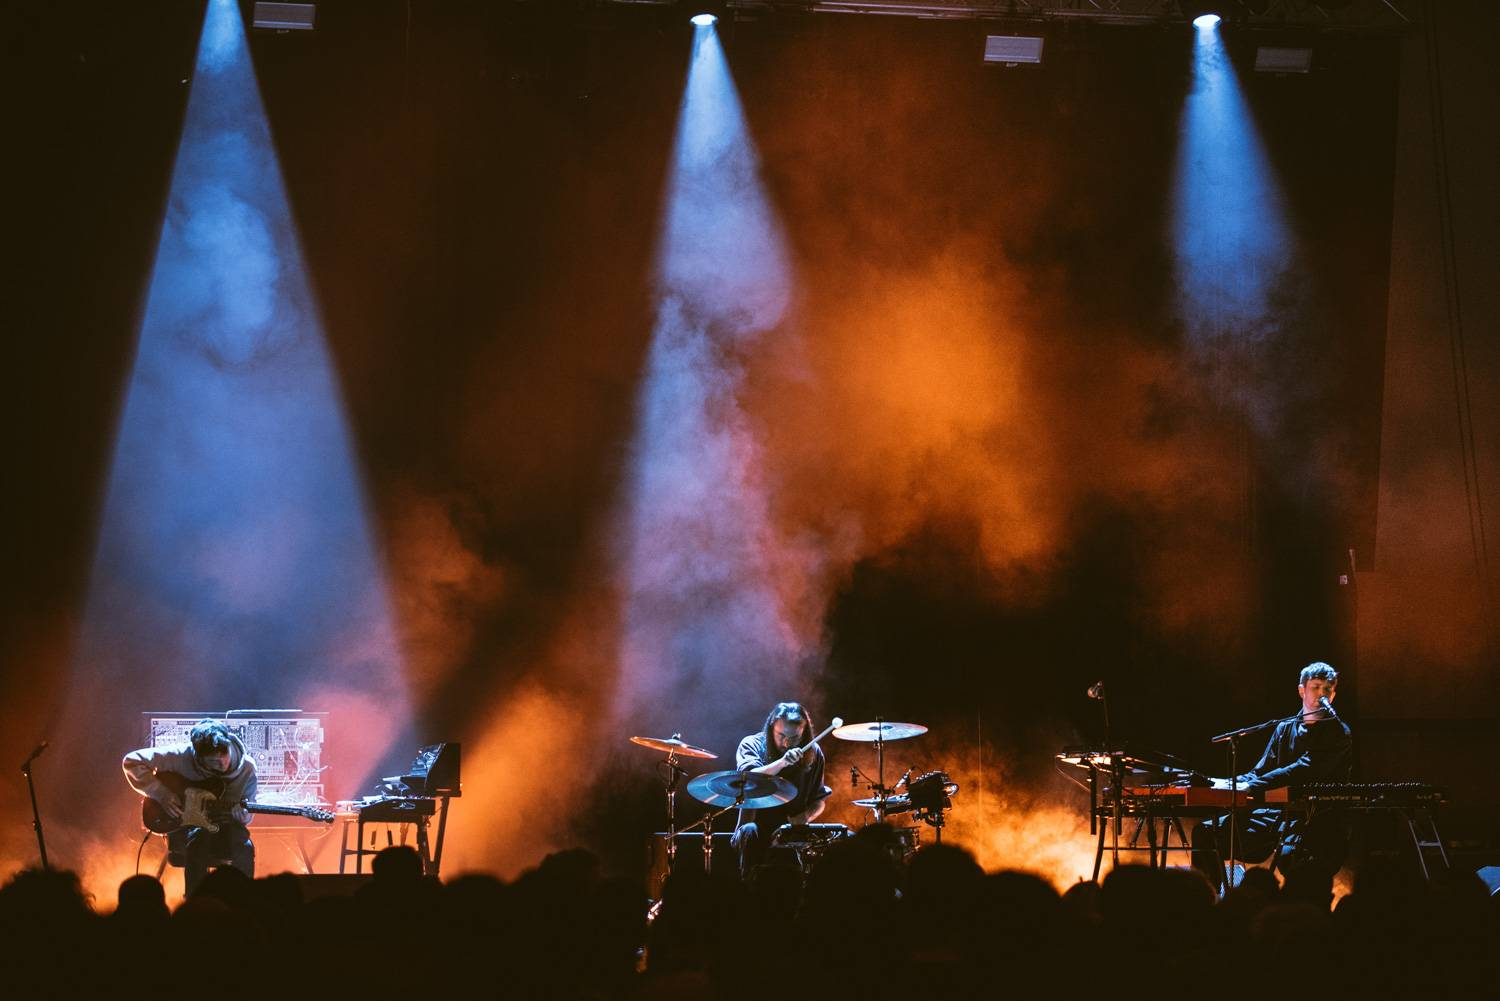 James Blake at the Harbour Convention Center, Vancouver, Mar 23 2019. Pavel Boiko photo.